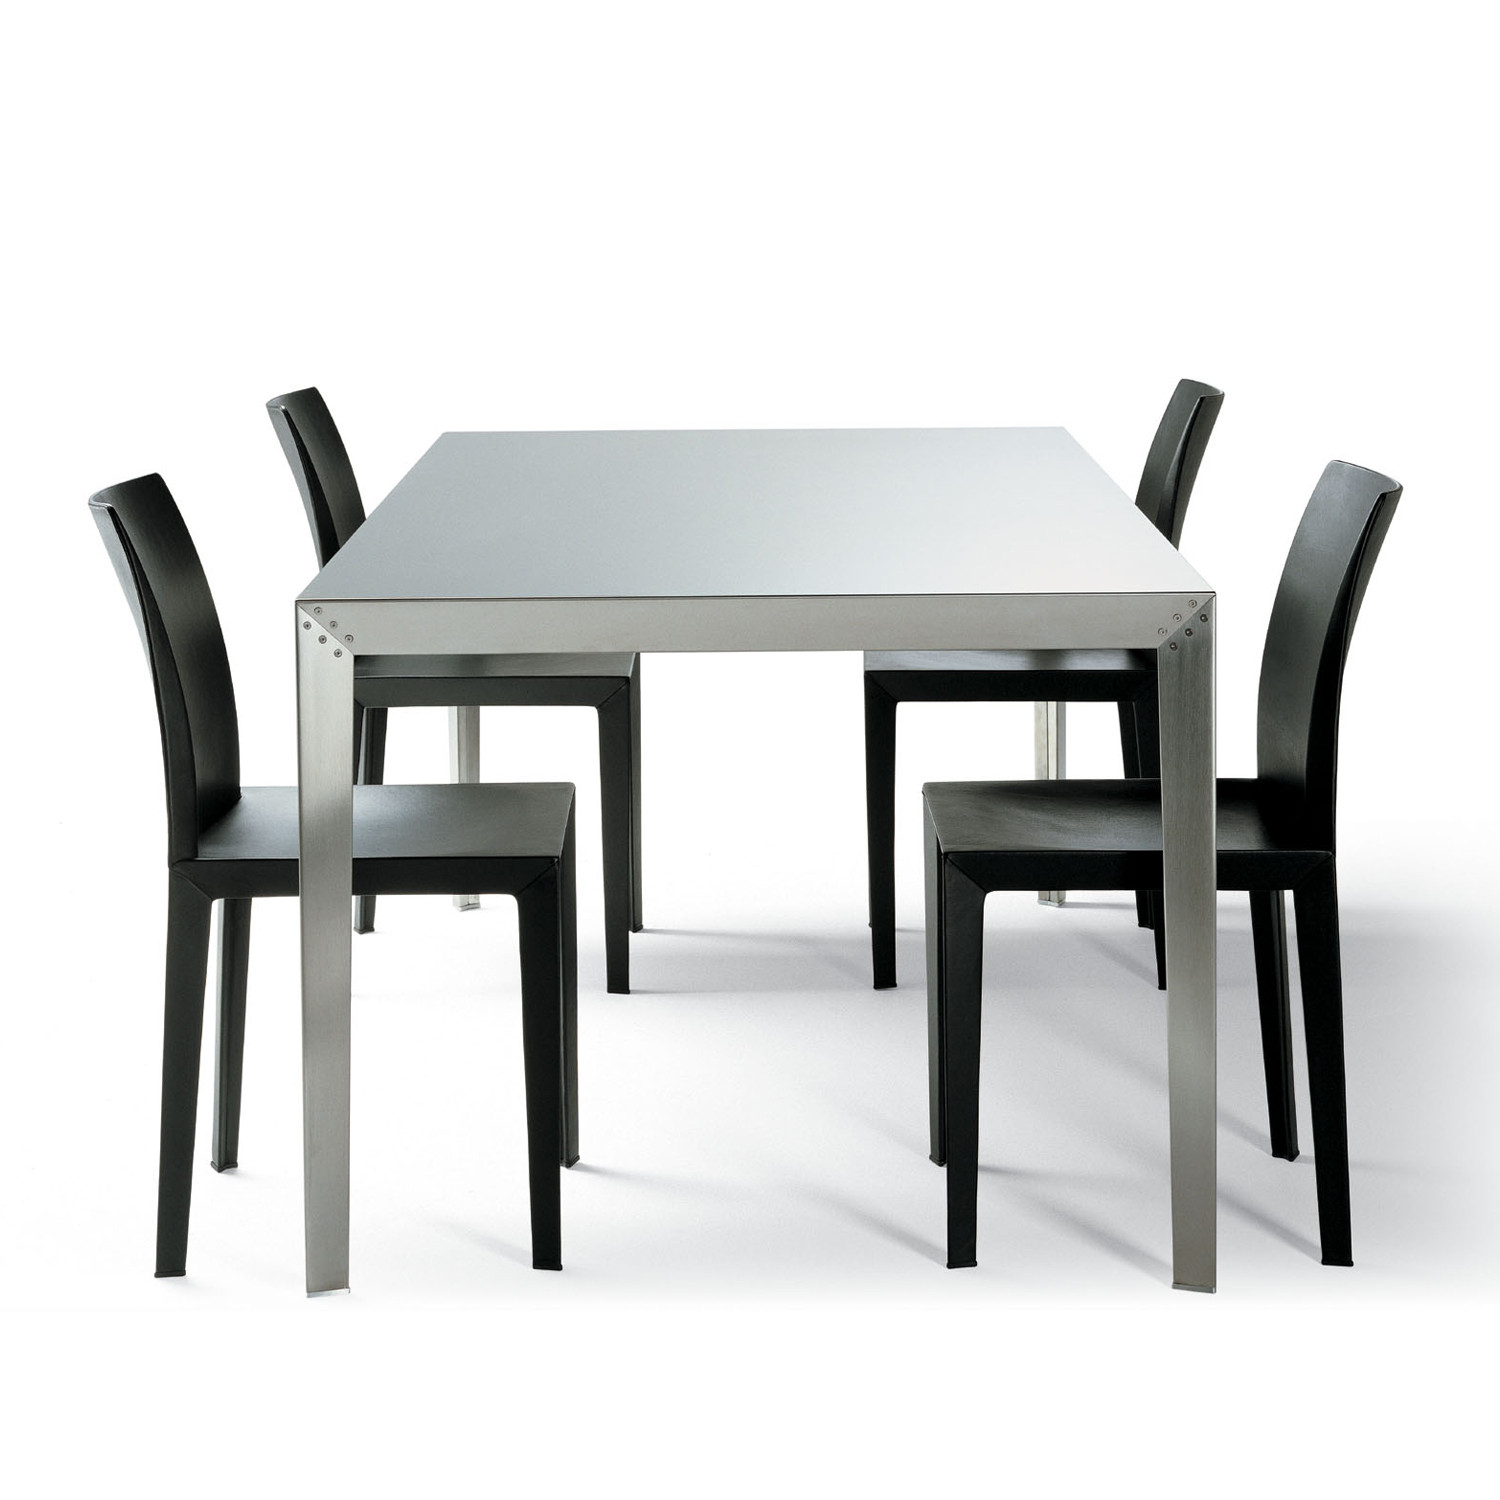 Lola Chairs with Table